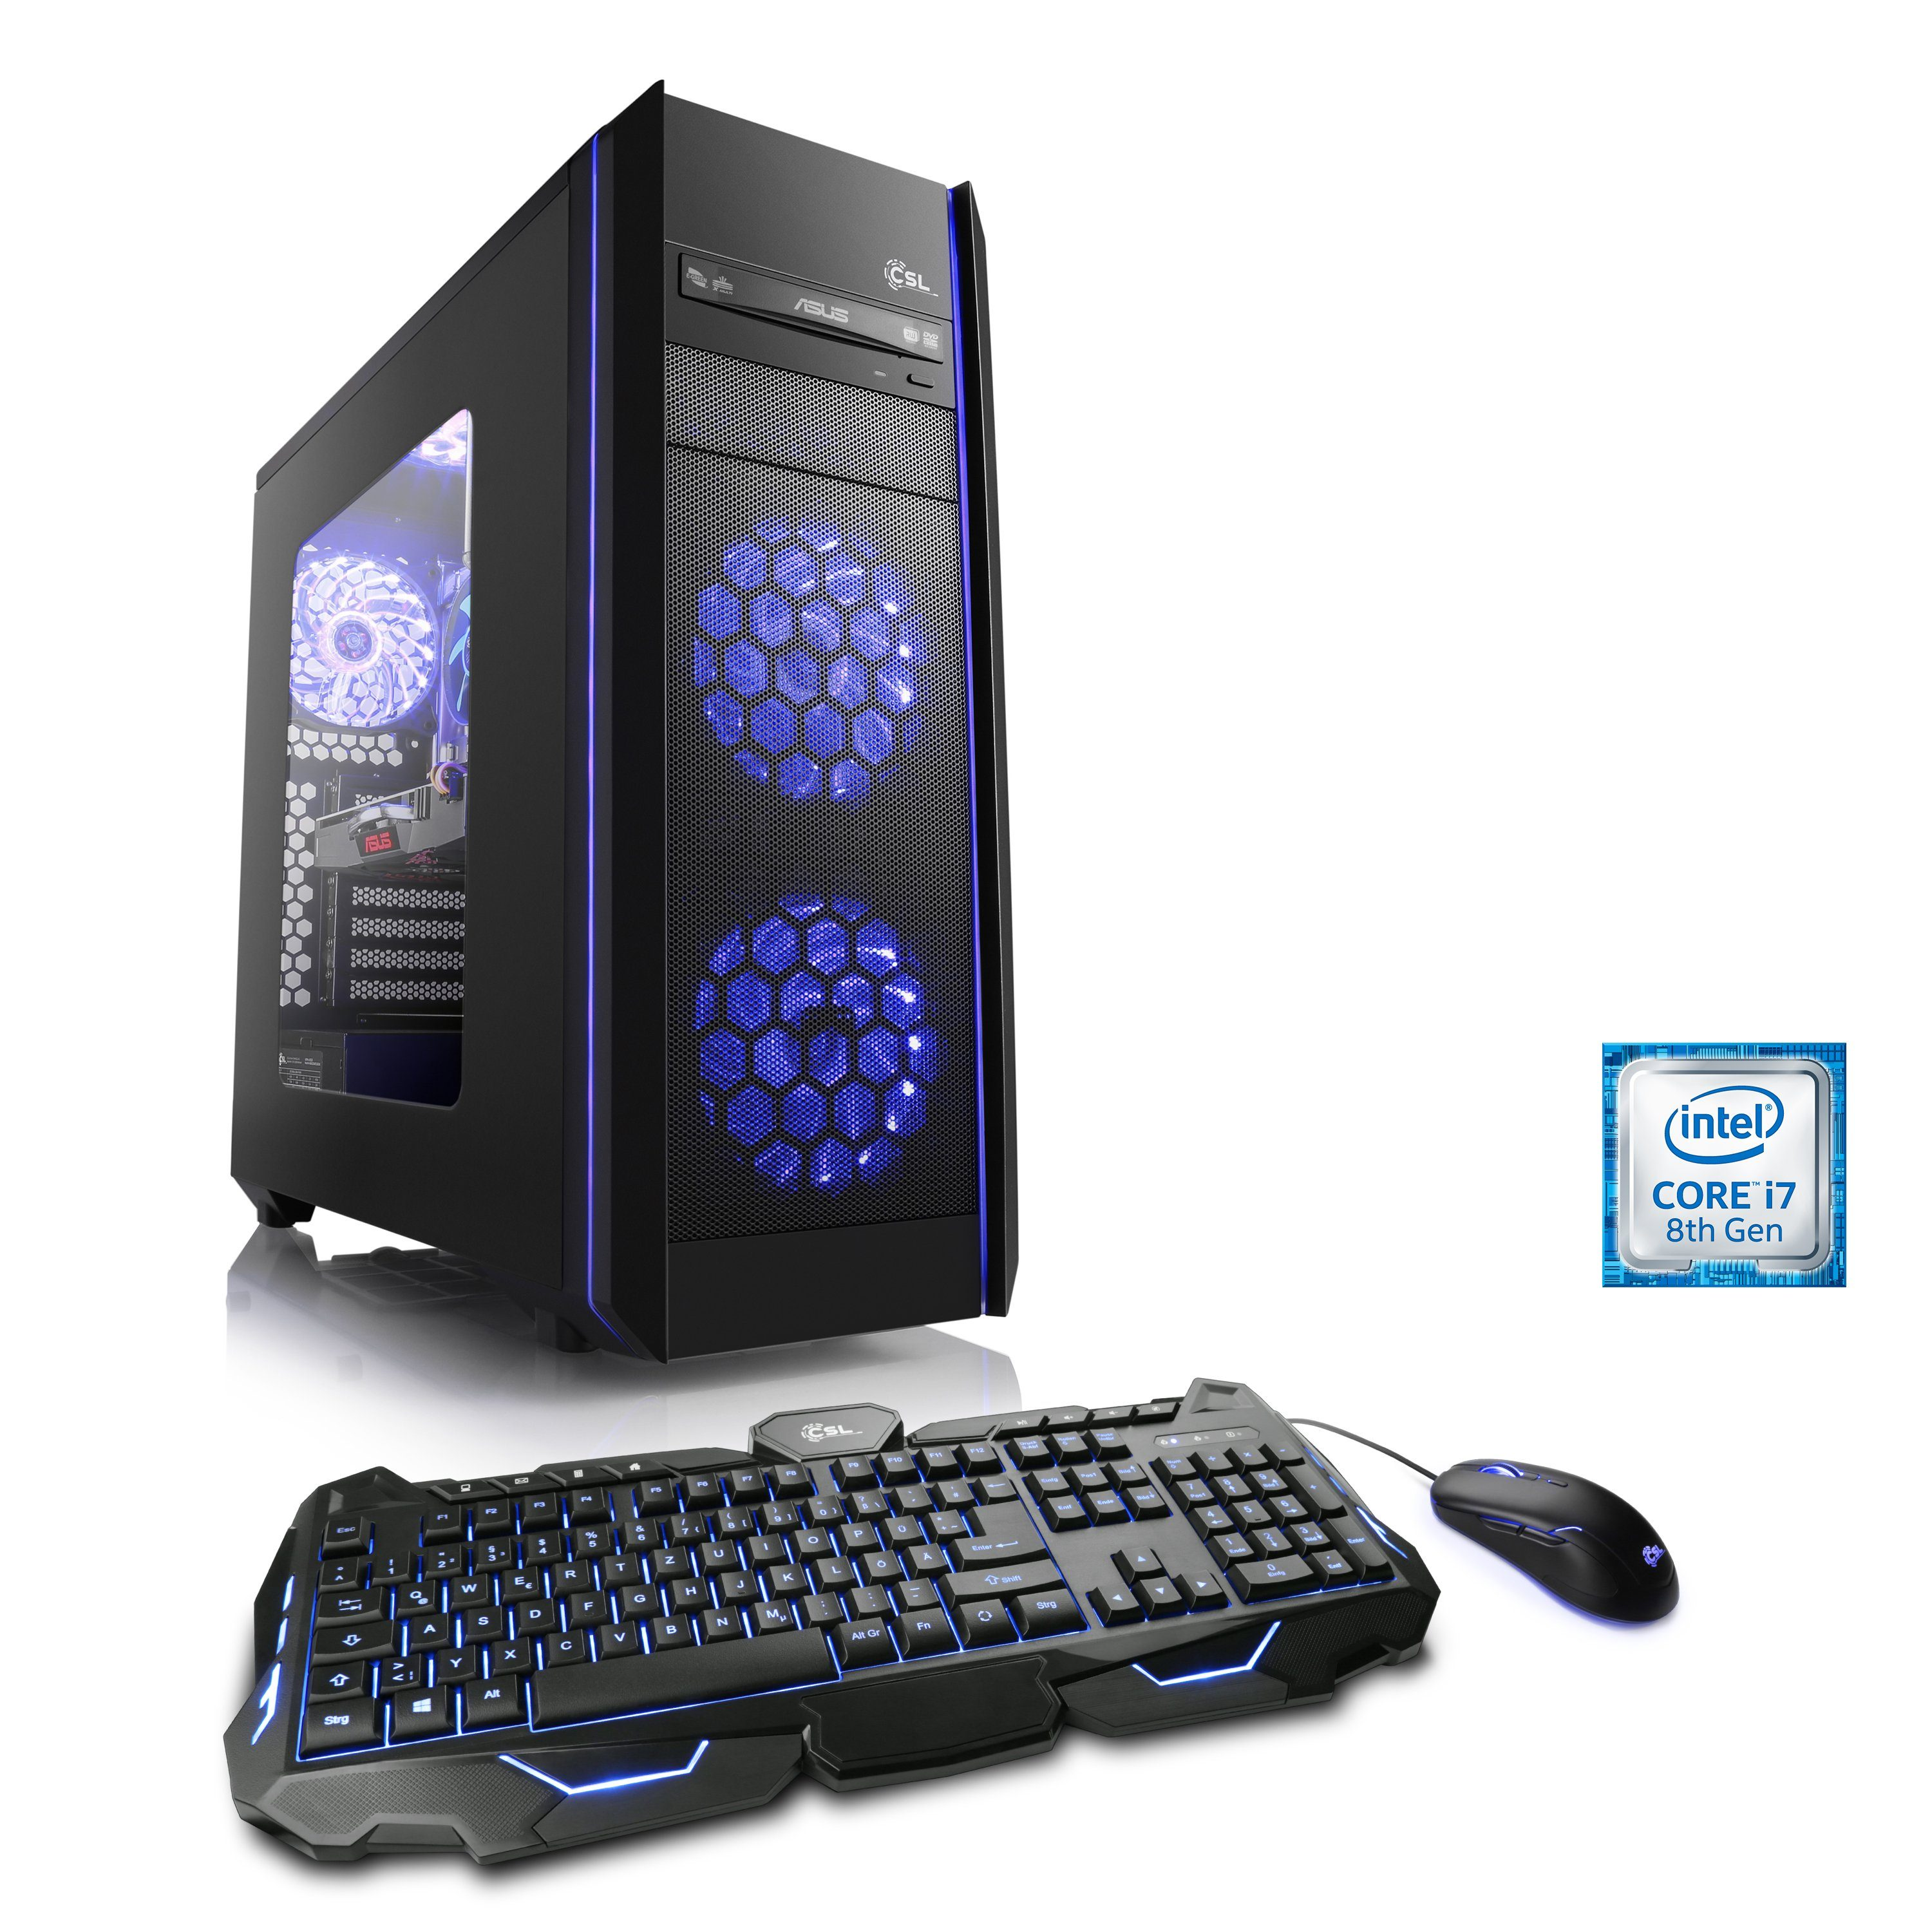 CSL Extreme Gaming PC | Core i7-8700 | GTX 1080 | 32GB DDR4| SSD »Speed T9364 Windows 10 Home«